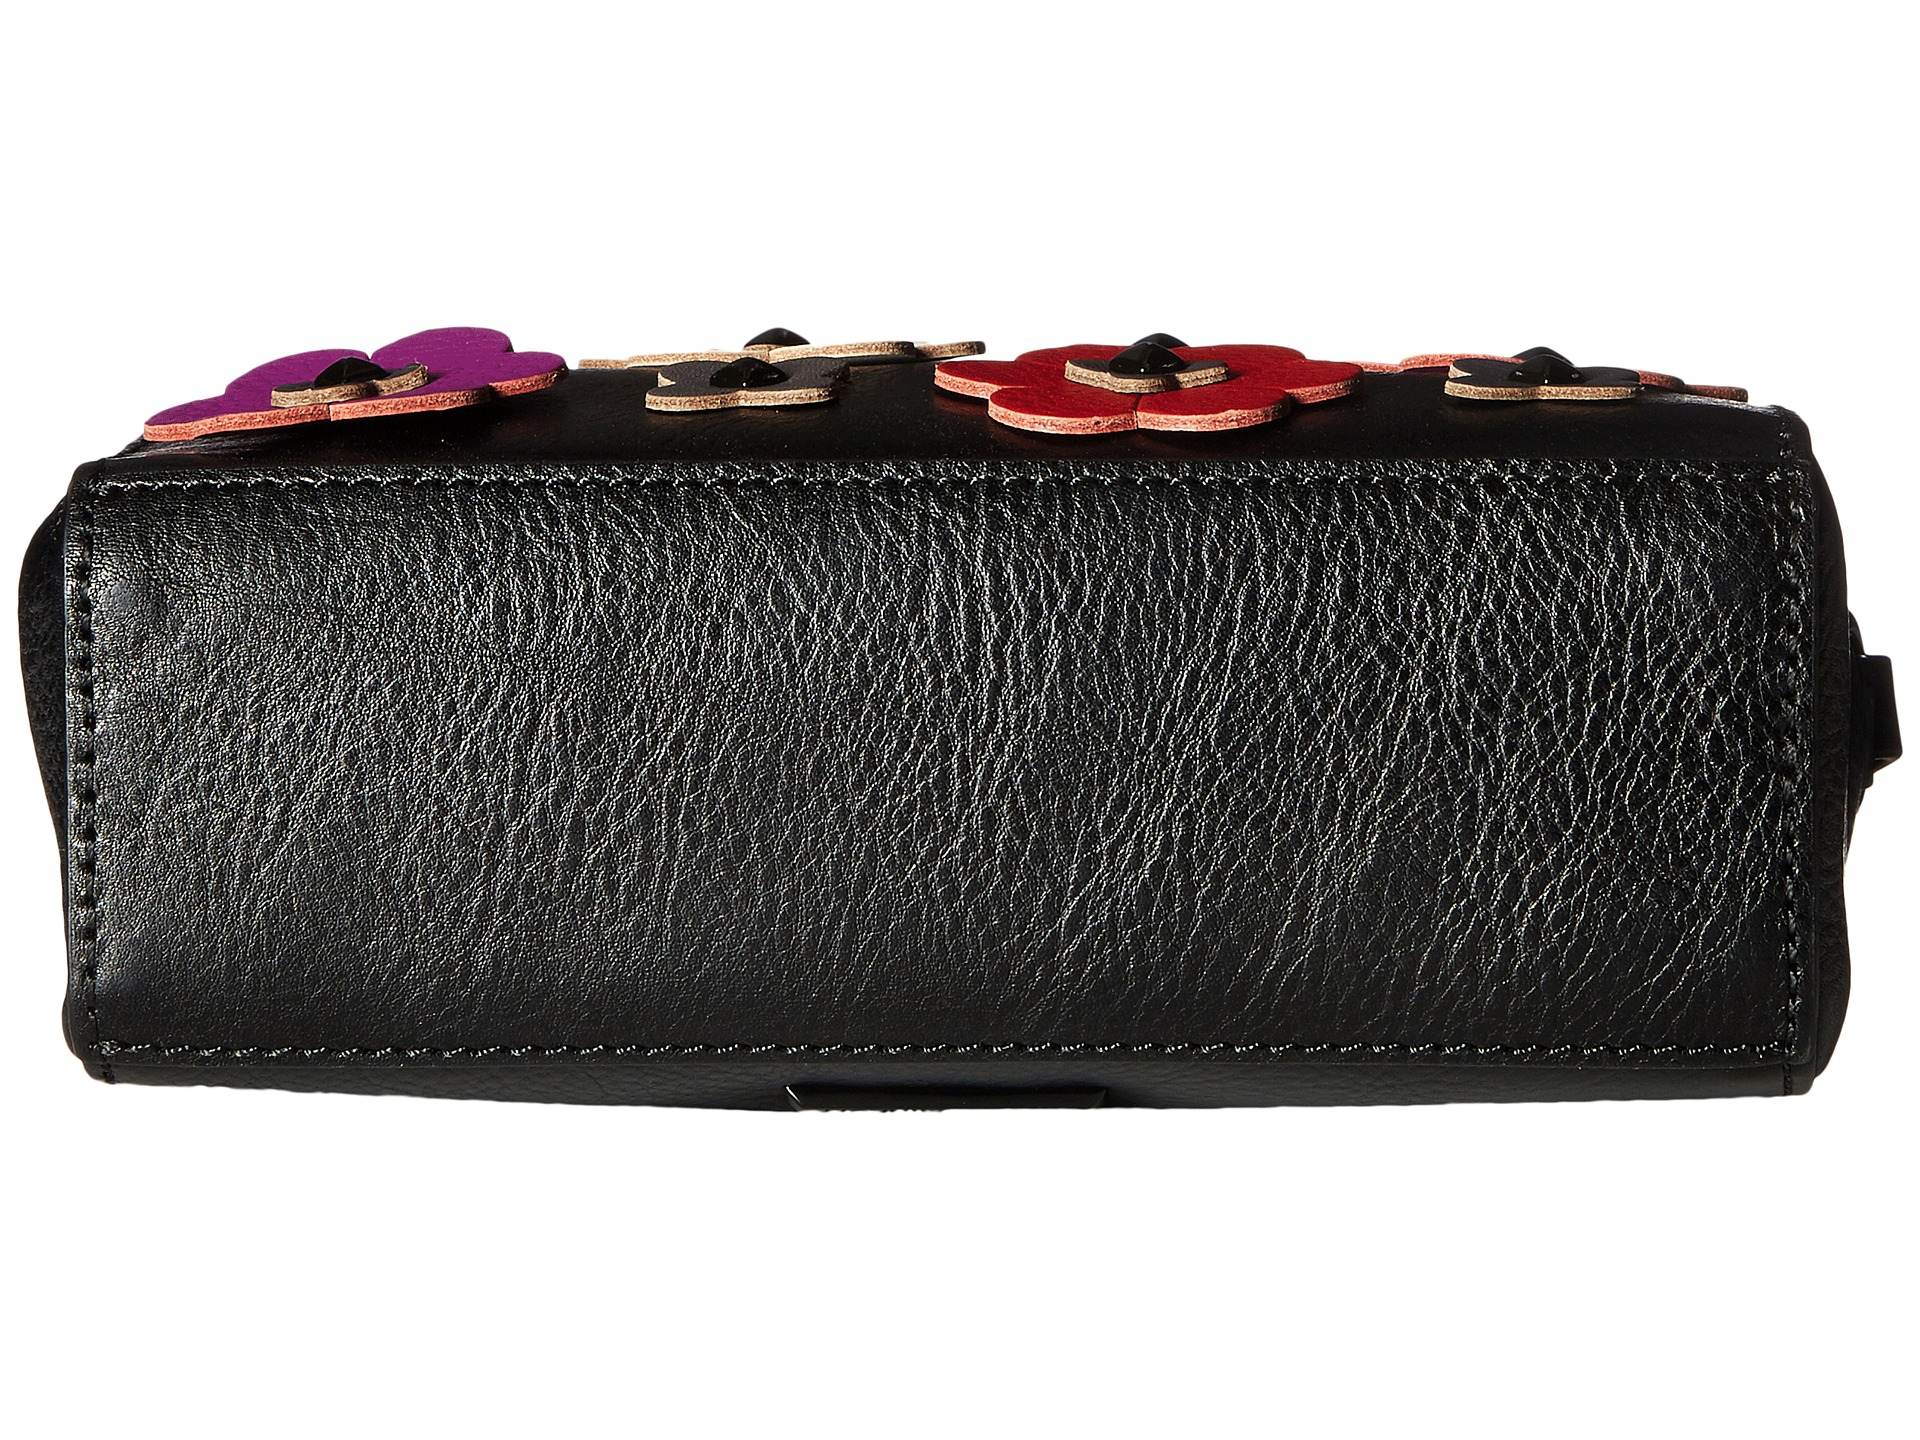 Rebecca Minkoff Floral Applique Camera Bag Black Multi - Zappos.com Free Shipping BOTH Ways